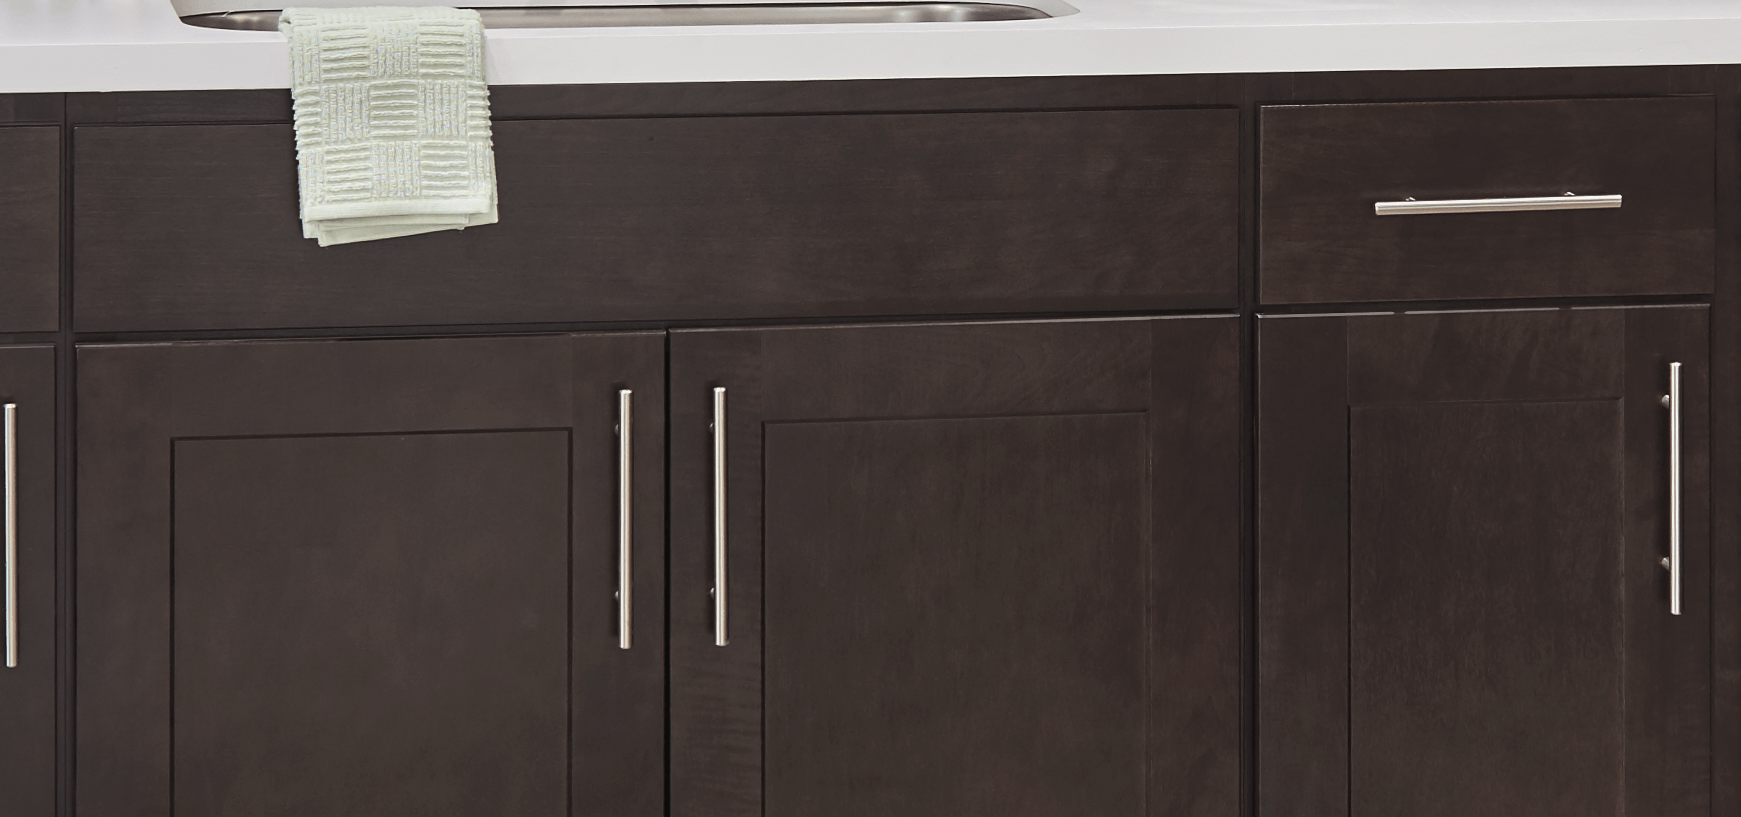 Wolf Classic Cabinetry Vanities - Dartmouth Dark Sable Universal Design Cabinets-Wholesale Cabinet Supply